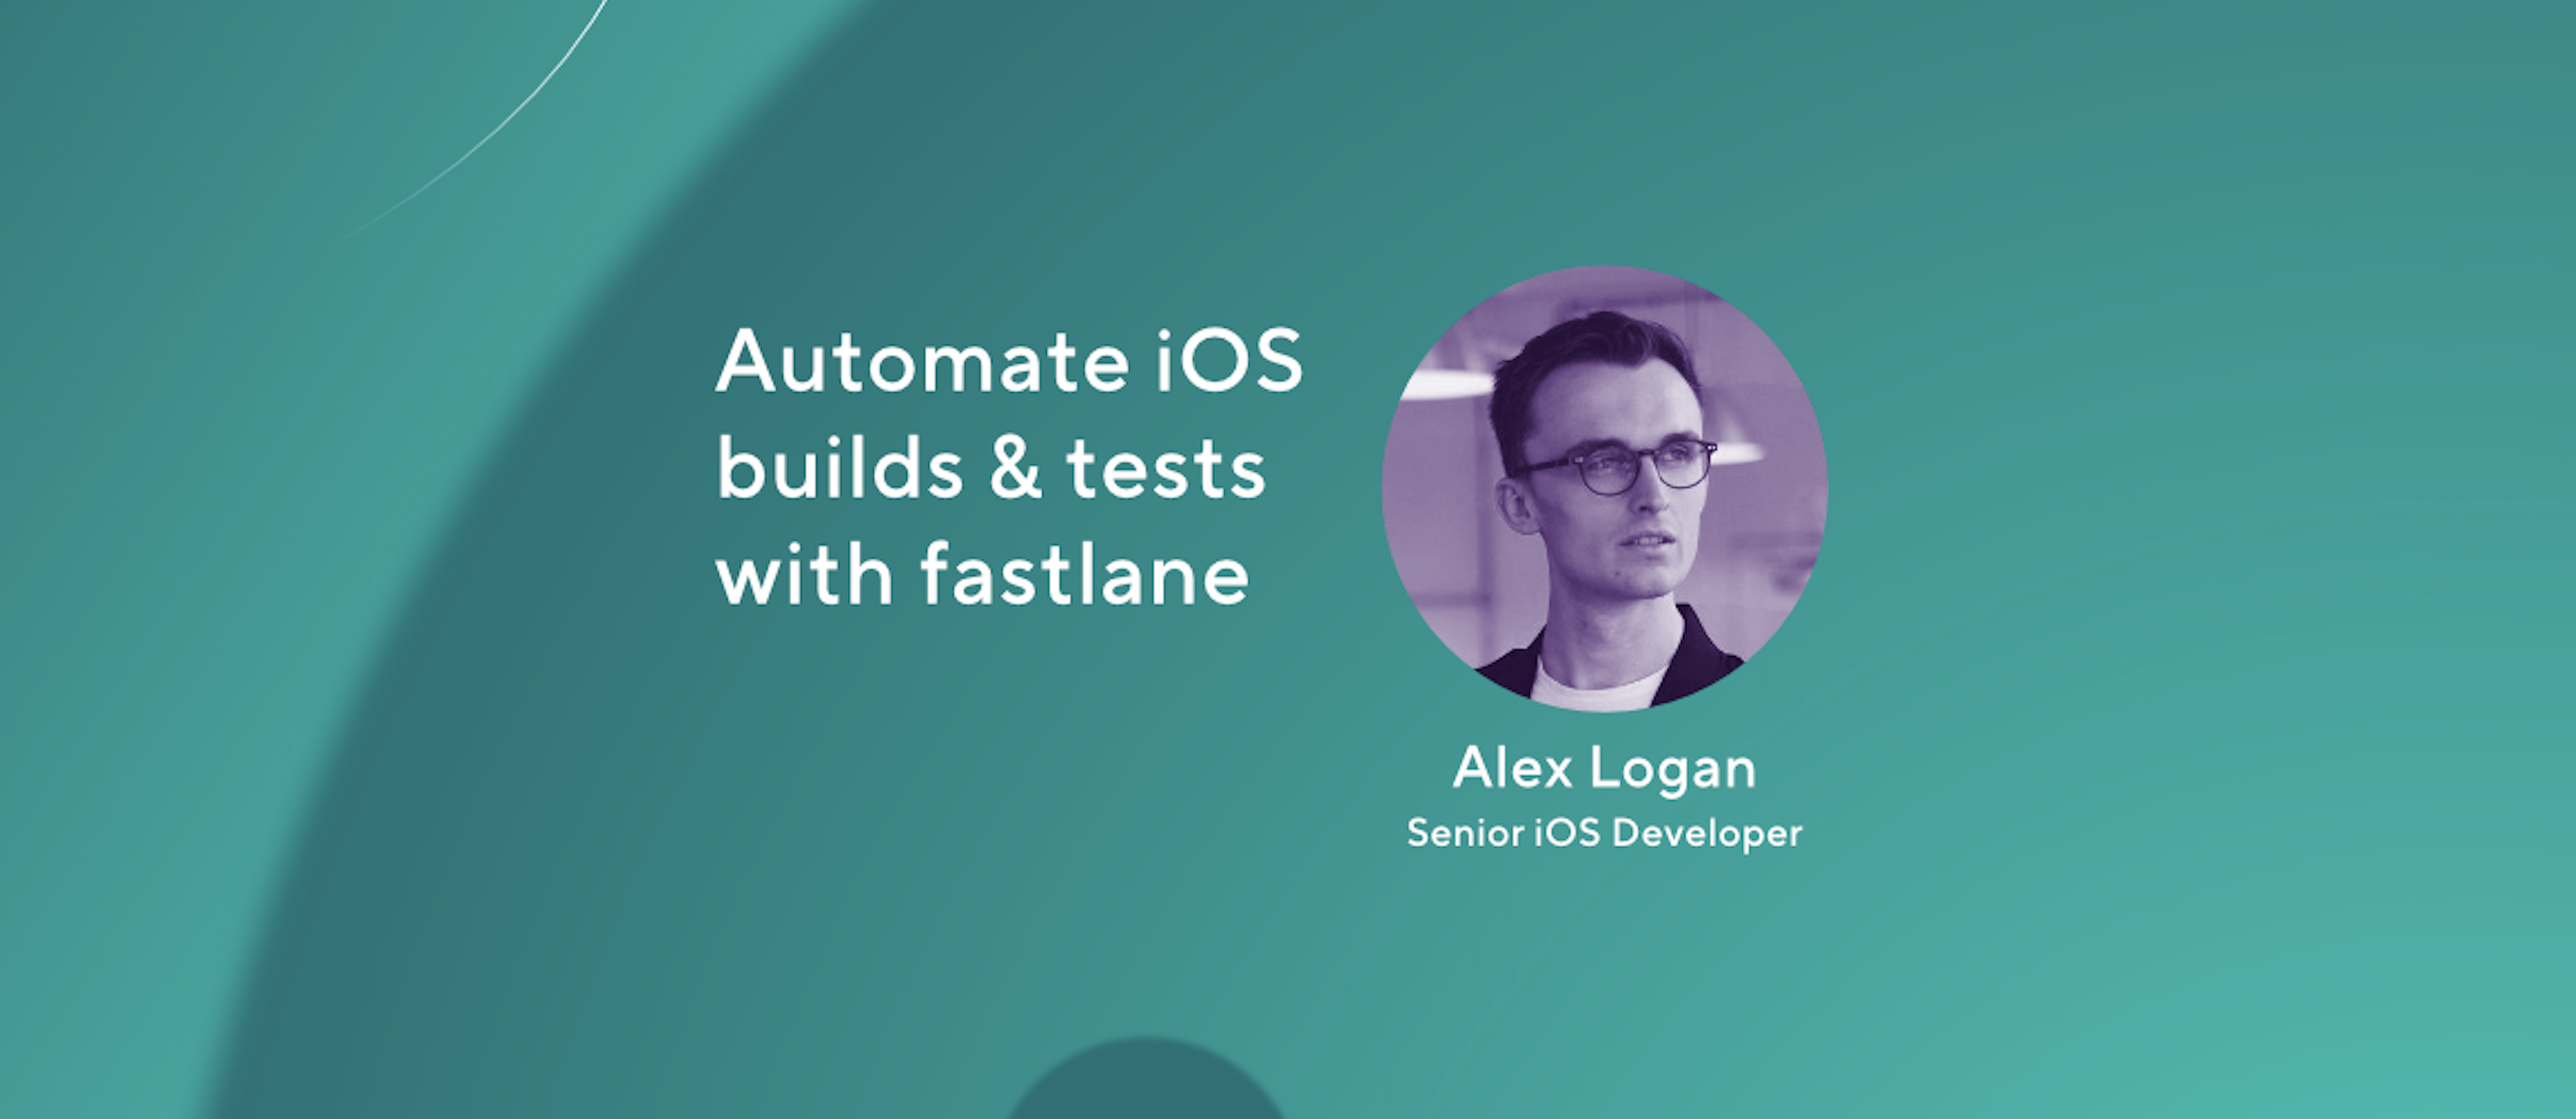 Automate iOS builds & tests with fastlane